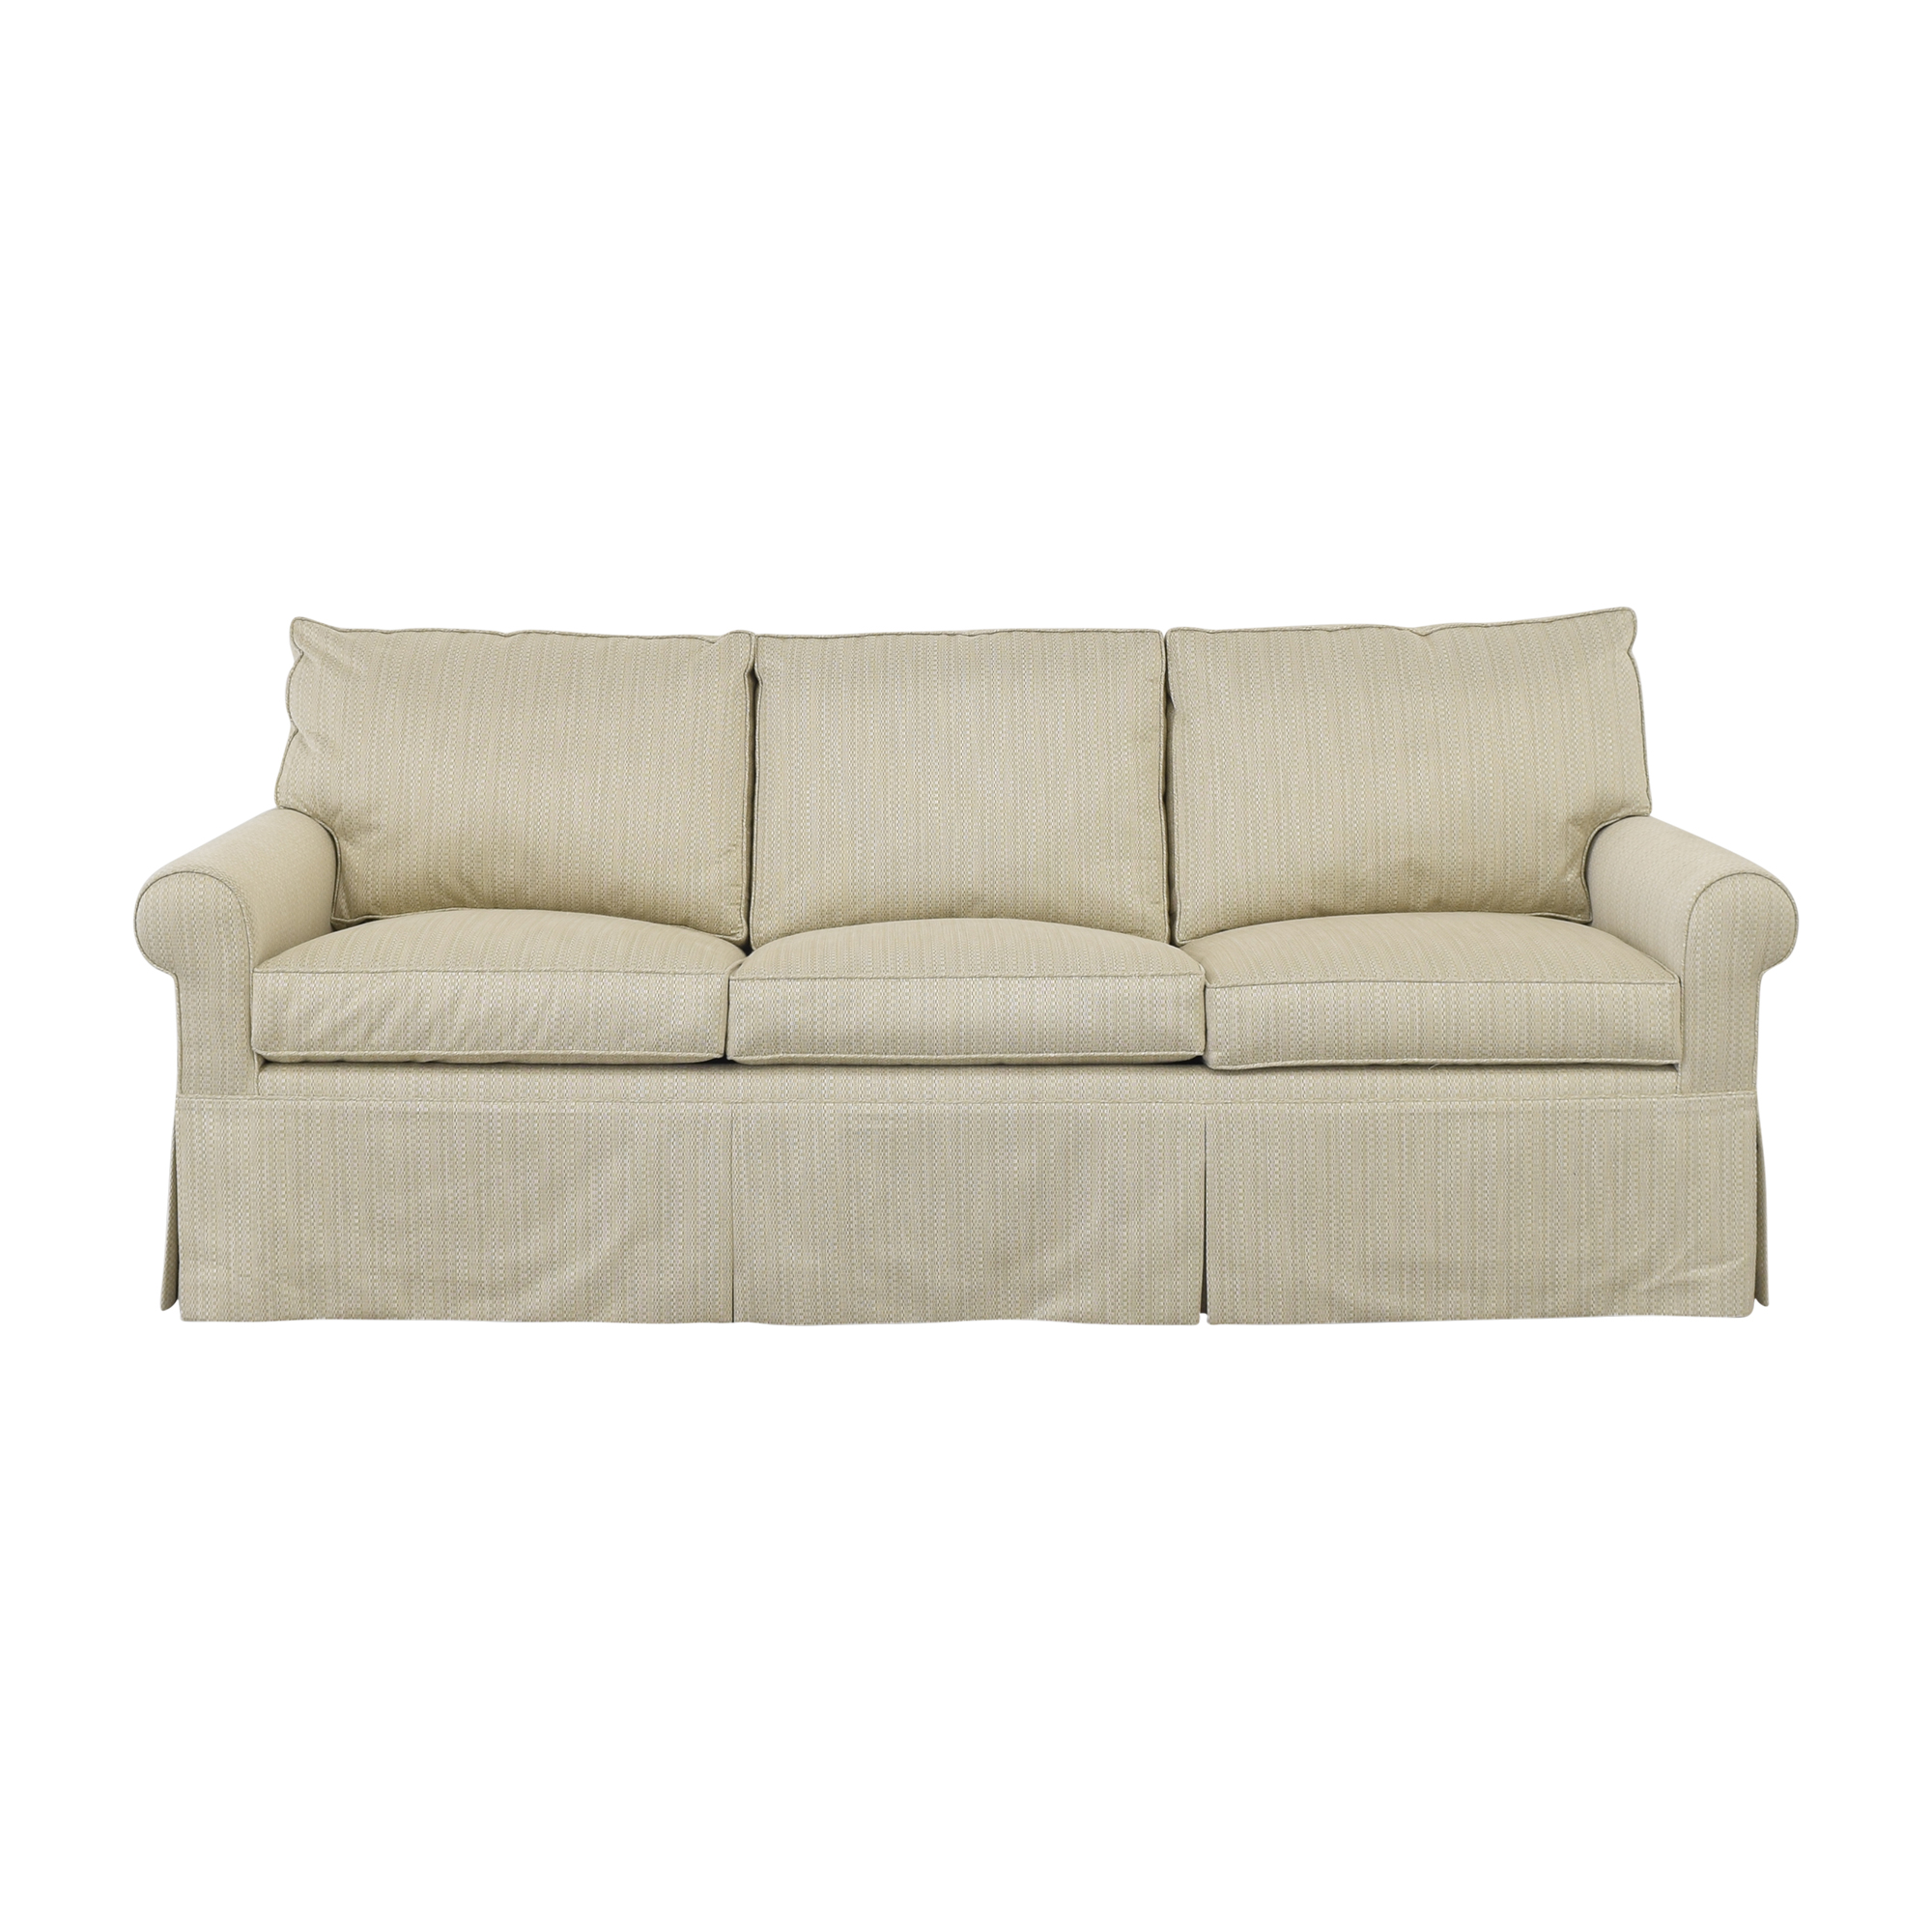 Carlyle Carlyle Sleeper Sofa for sale